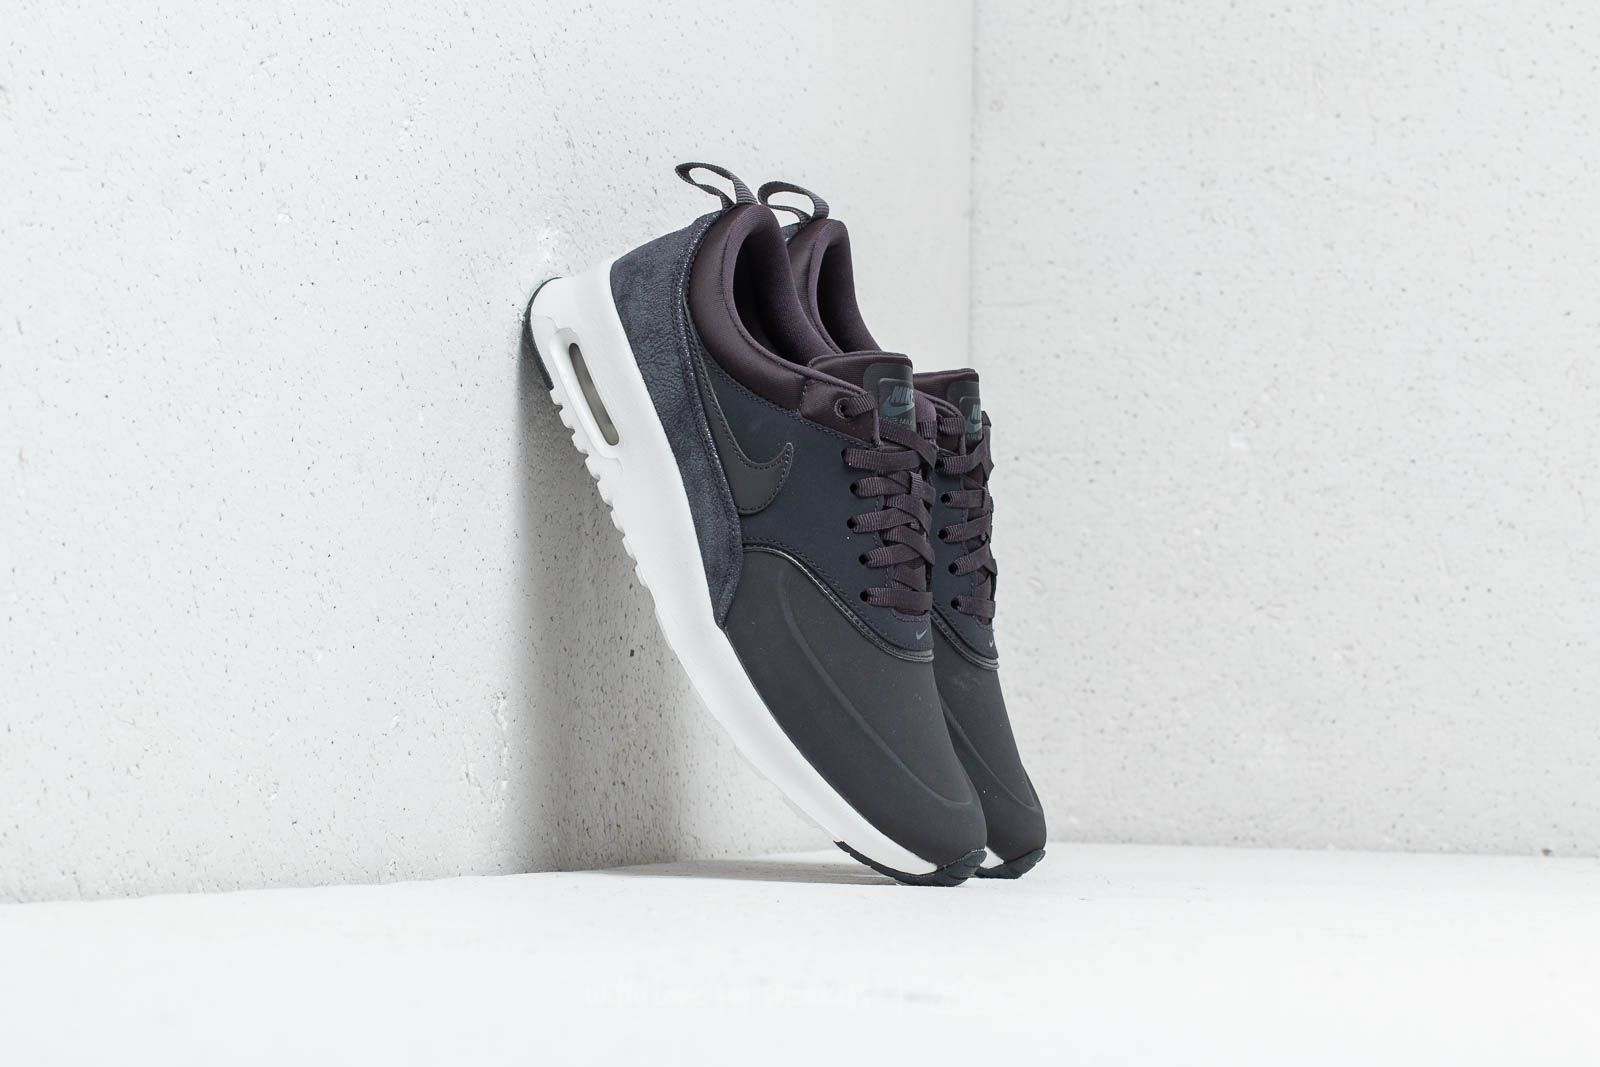 outlet store f7221 91137 Nike Air Max Thea Premium Wmns Oil Grey  Oil Grey-Summit White at a